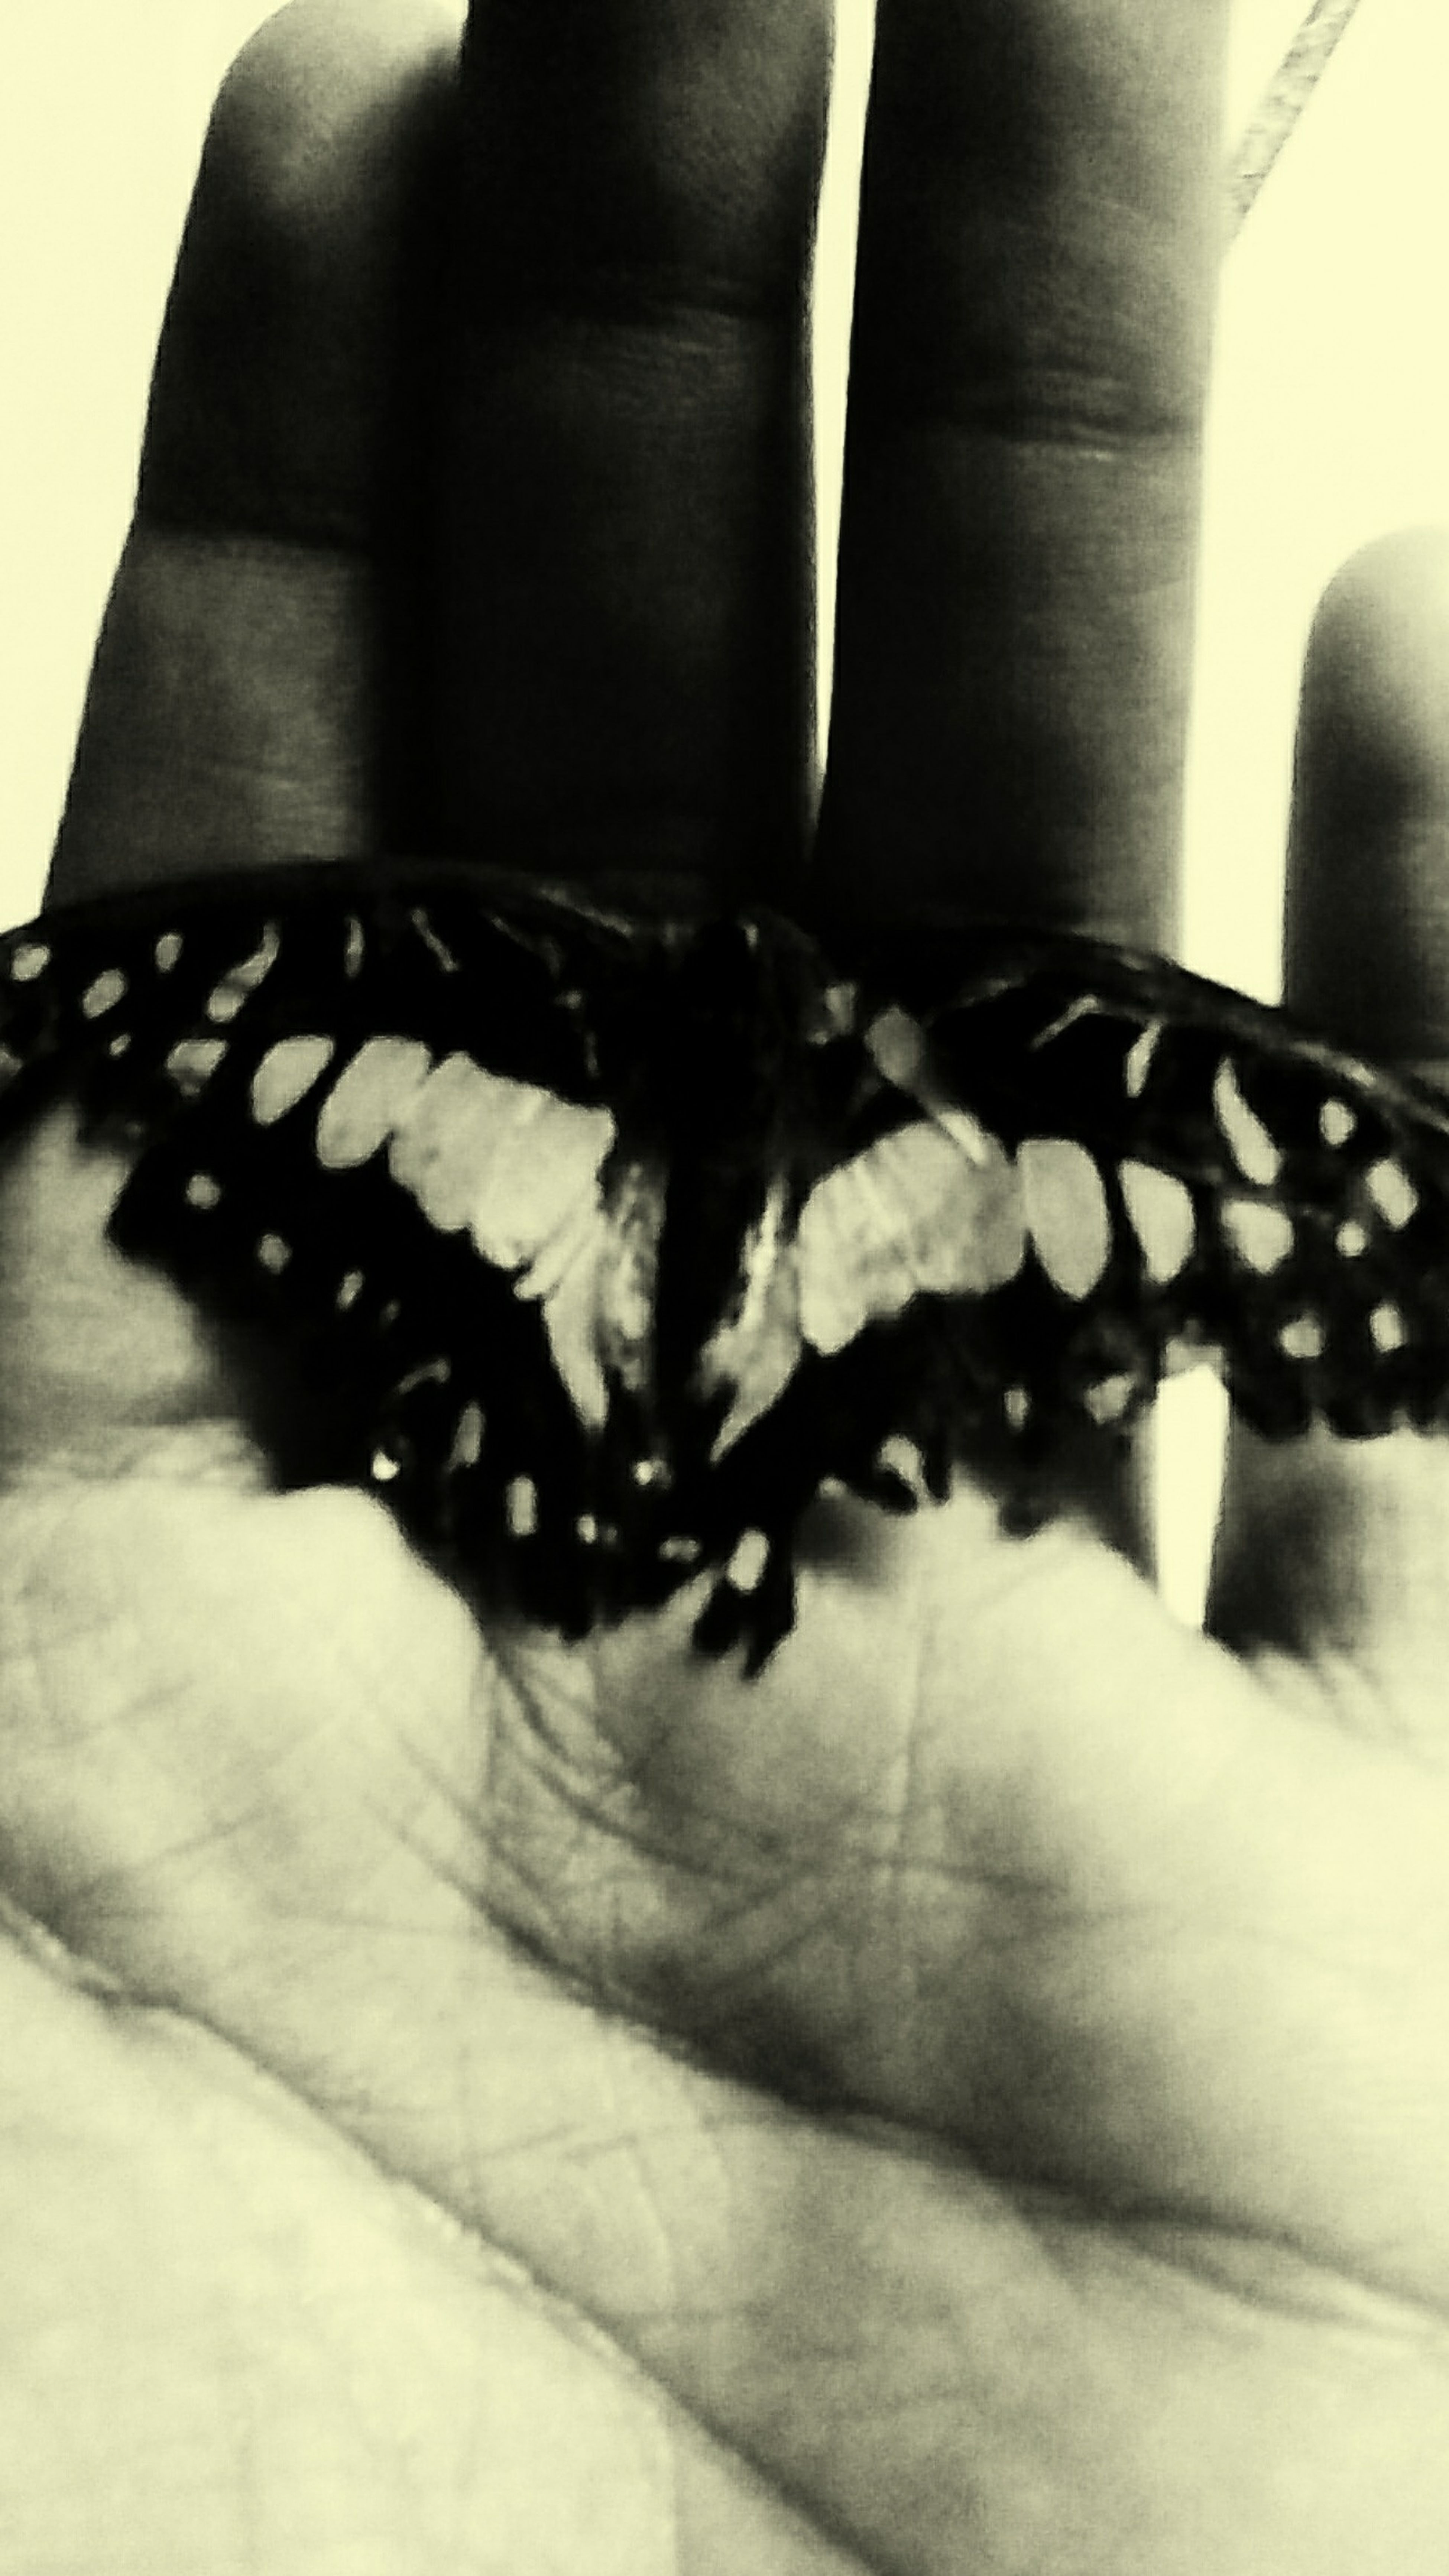 life is fragile. it has beautiful starts and nice endings Dead Butterflies Rest In Peace ❤ Butterfly Embalmer Monochrome_Monday